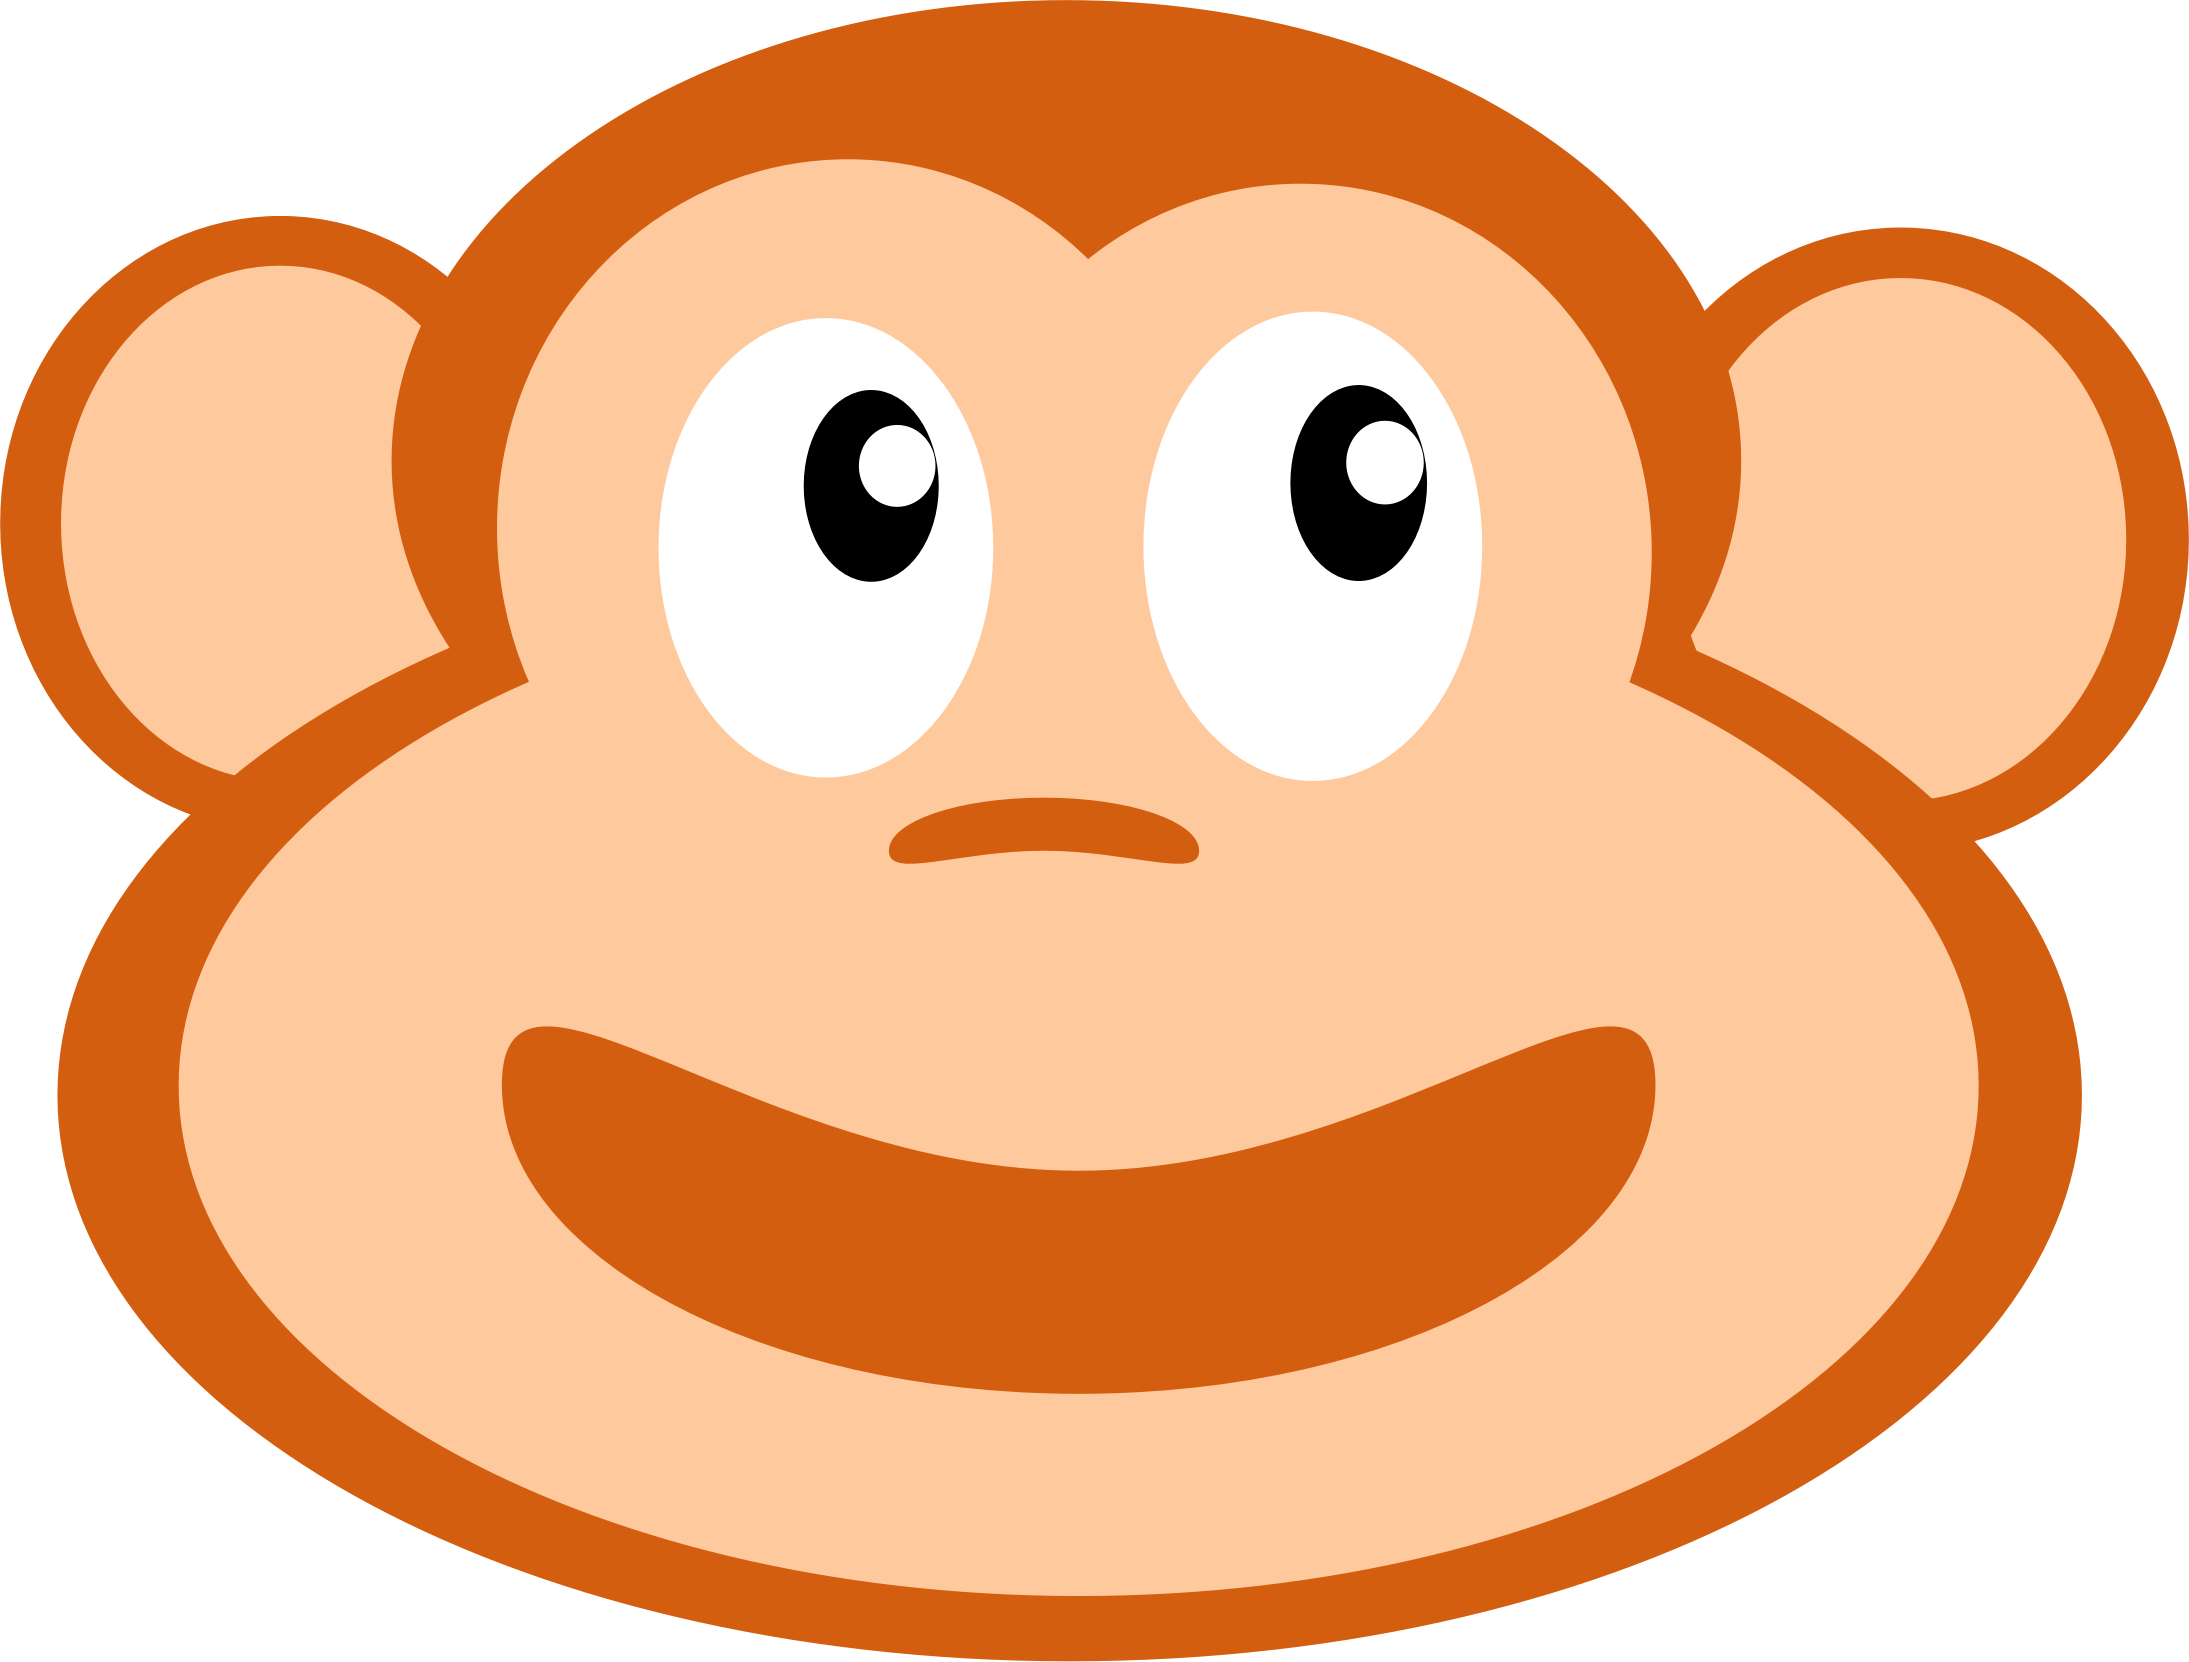 Monkey by kingsleyernestfoong